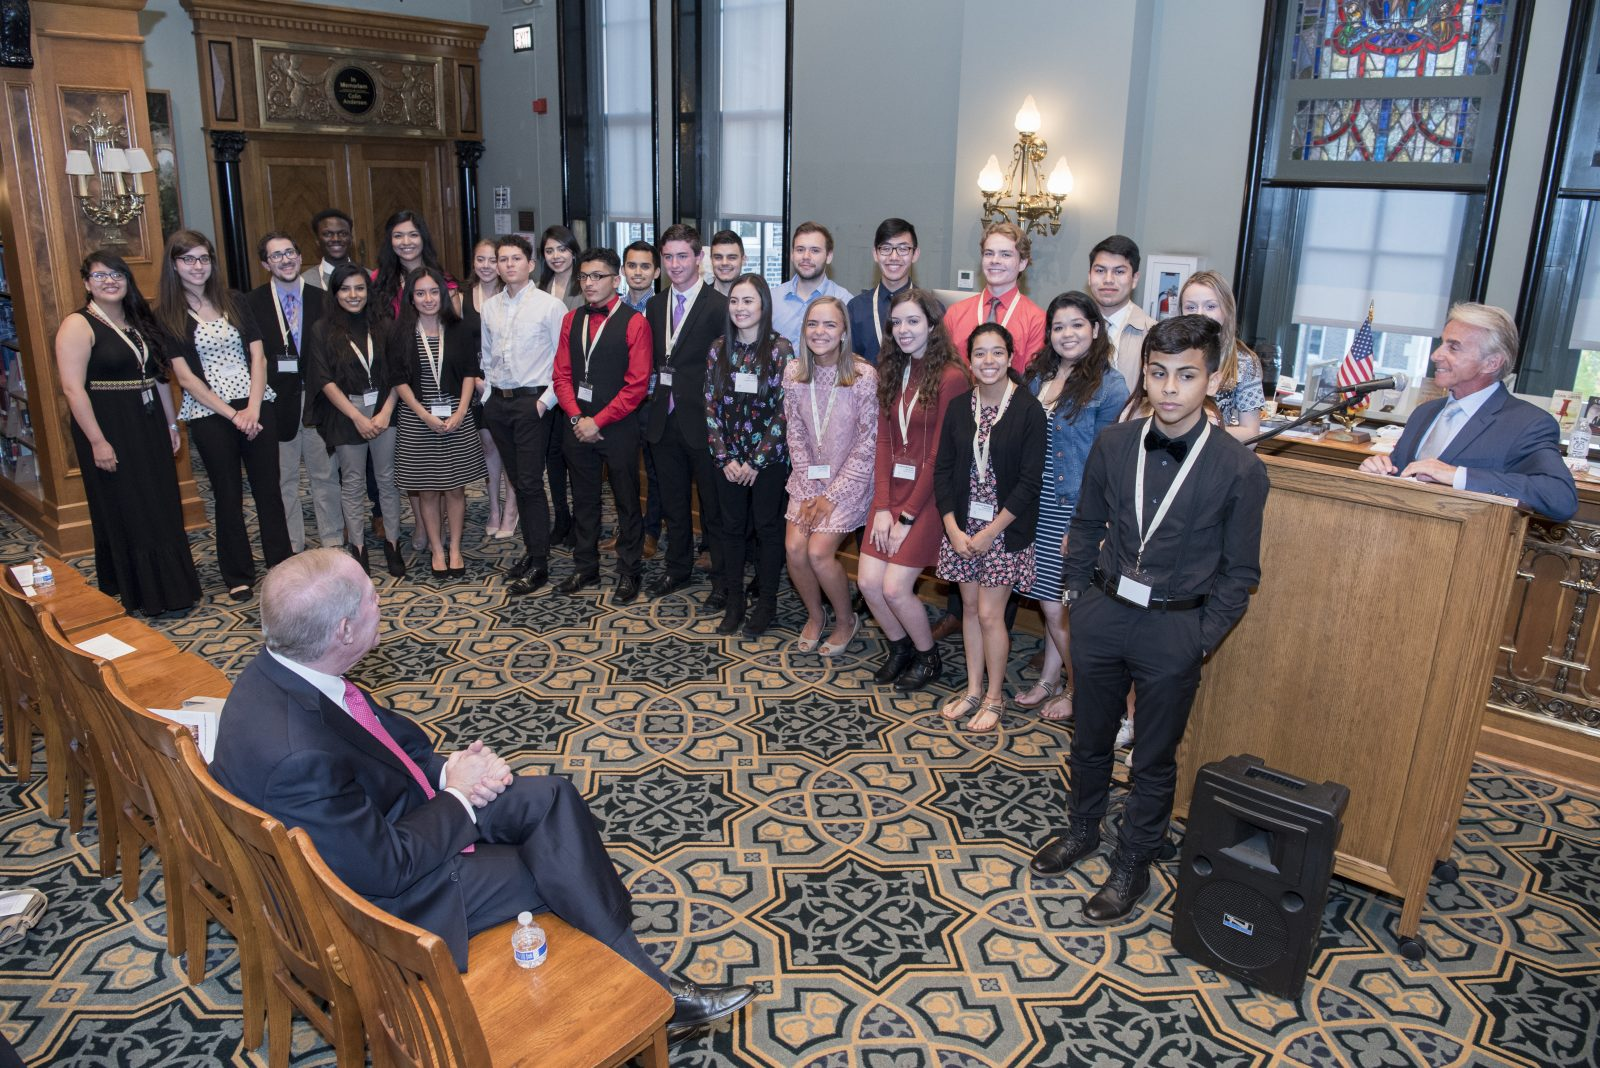 New and Existing Scholars at our 2017 Awards Ceremony